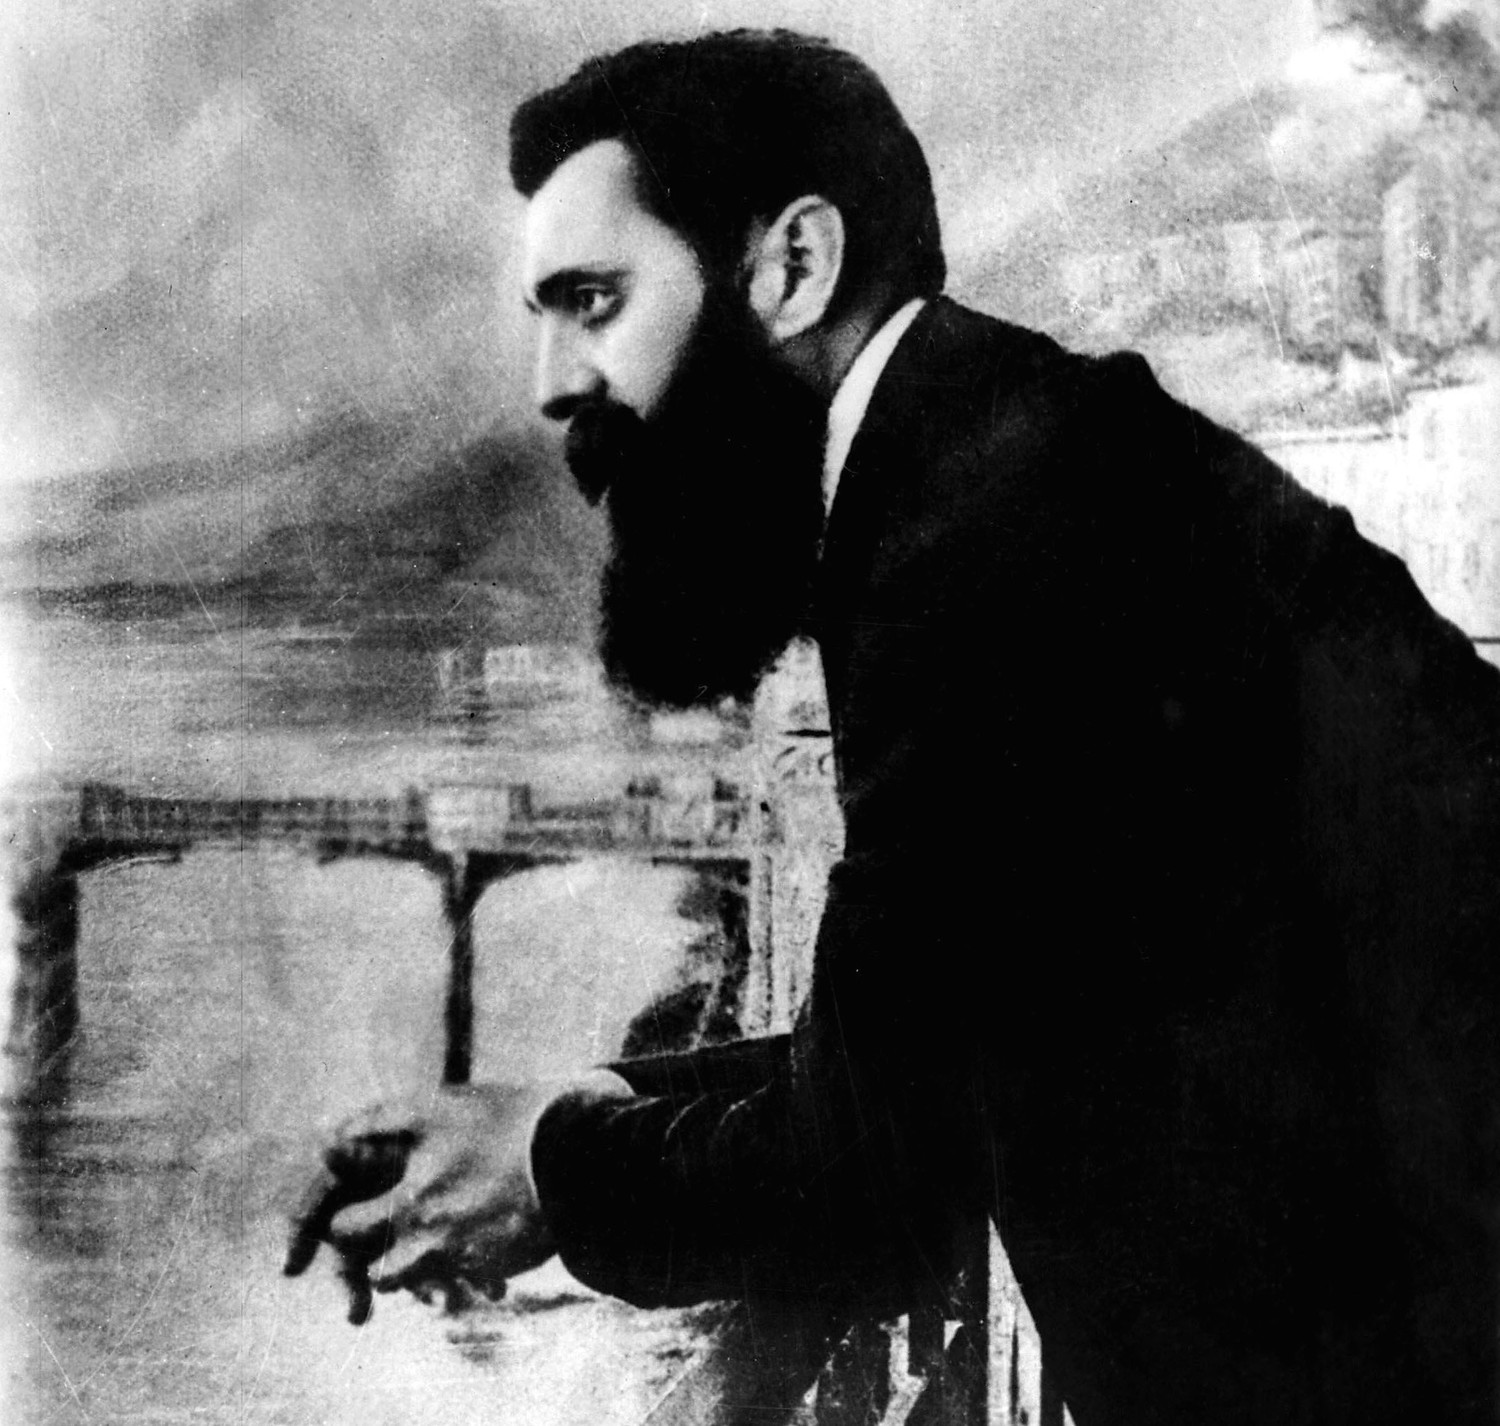 Theodore Herzl, the father of modern Zionism, leans over the balcony of the Drei Konige Hotel during the first Zionist congress August 29, 1897 in Basel, Switzerland.